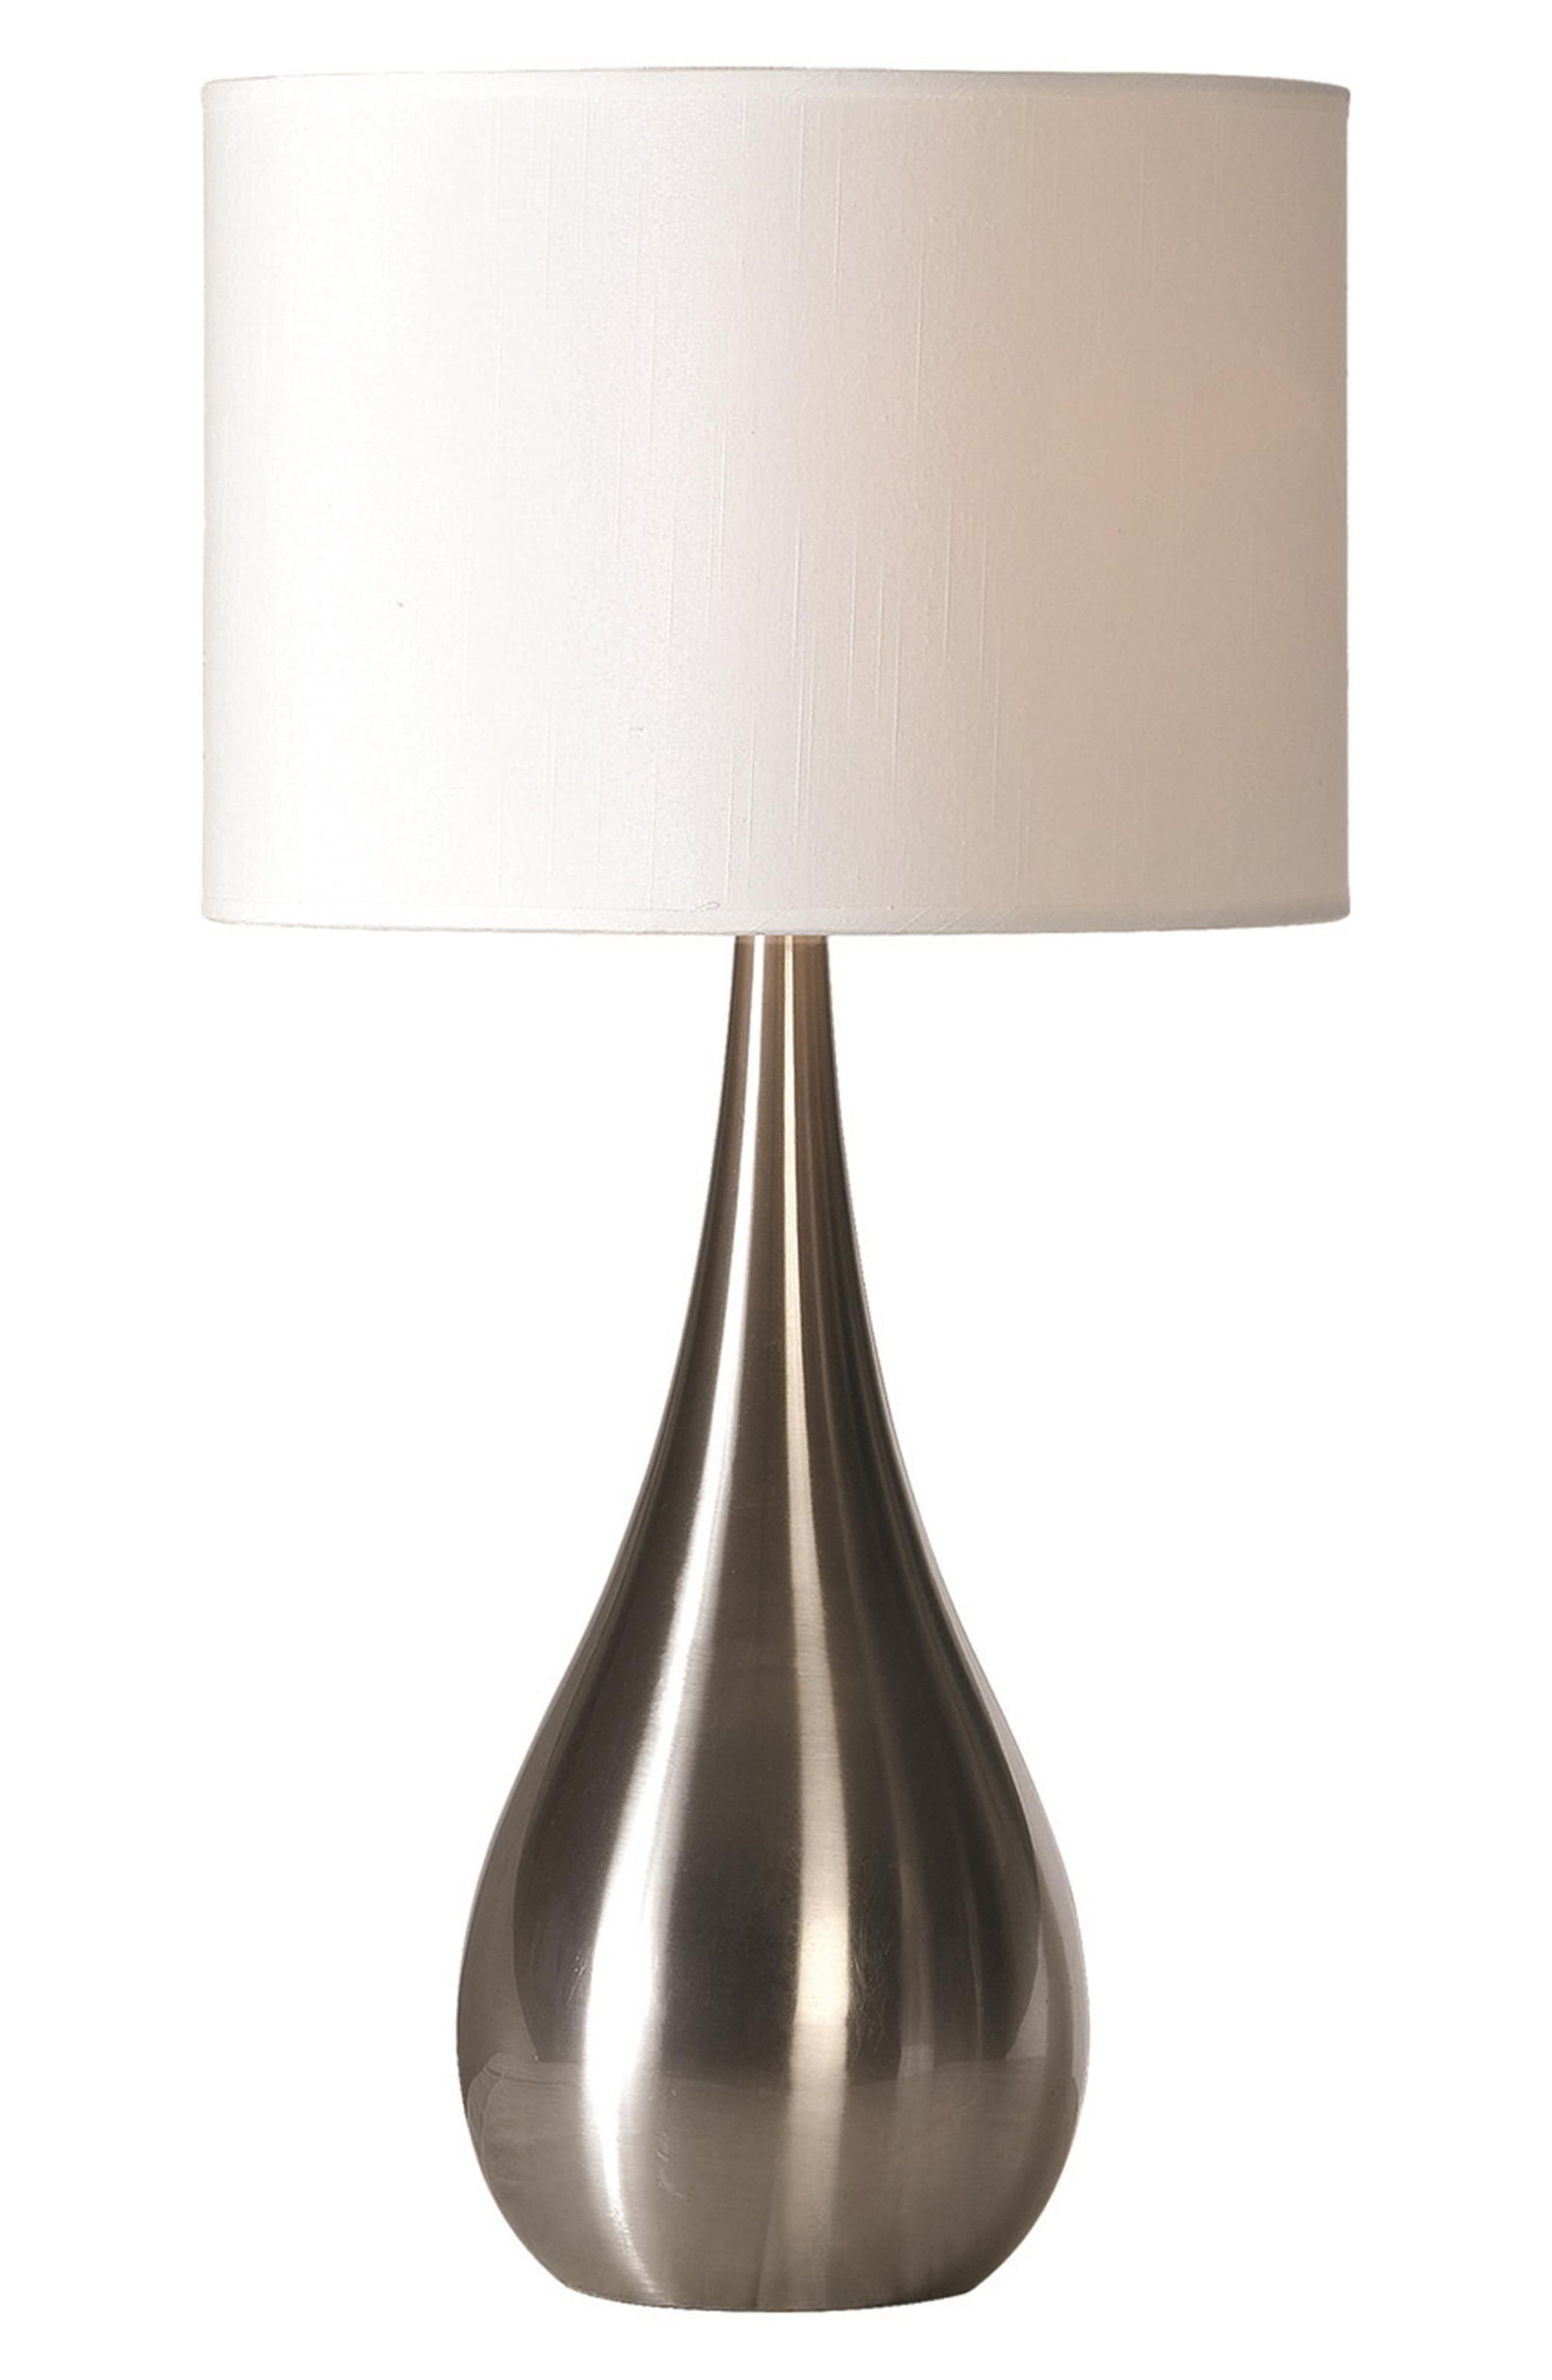 Alternate Image 1 Selected - Renwil Alba Table Lamp